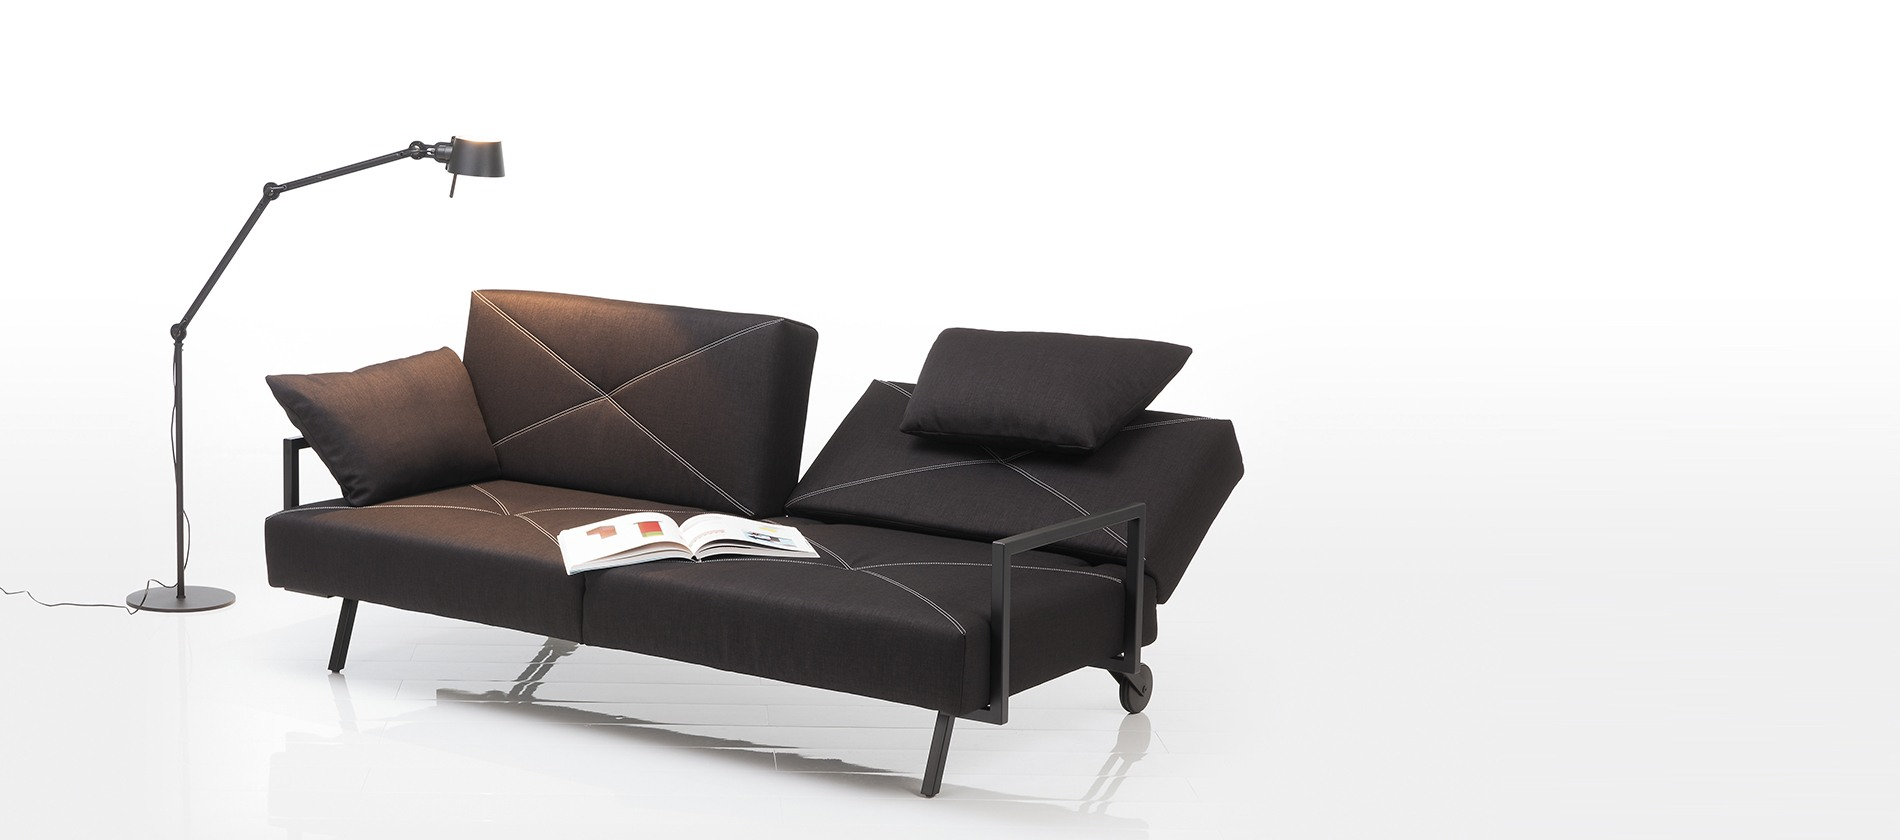 sofa concert von br hl das designer schlafsofa. Black Bedroom Furniture Sets. Home Design Ideas